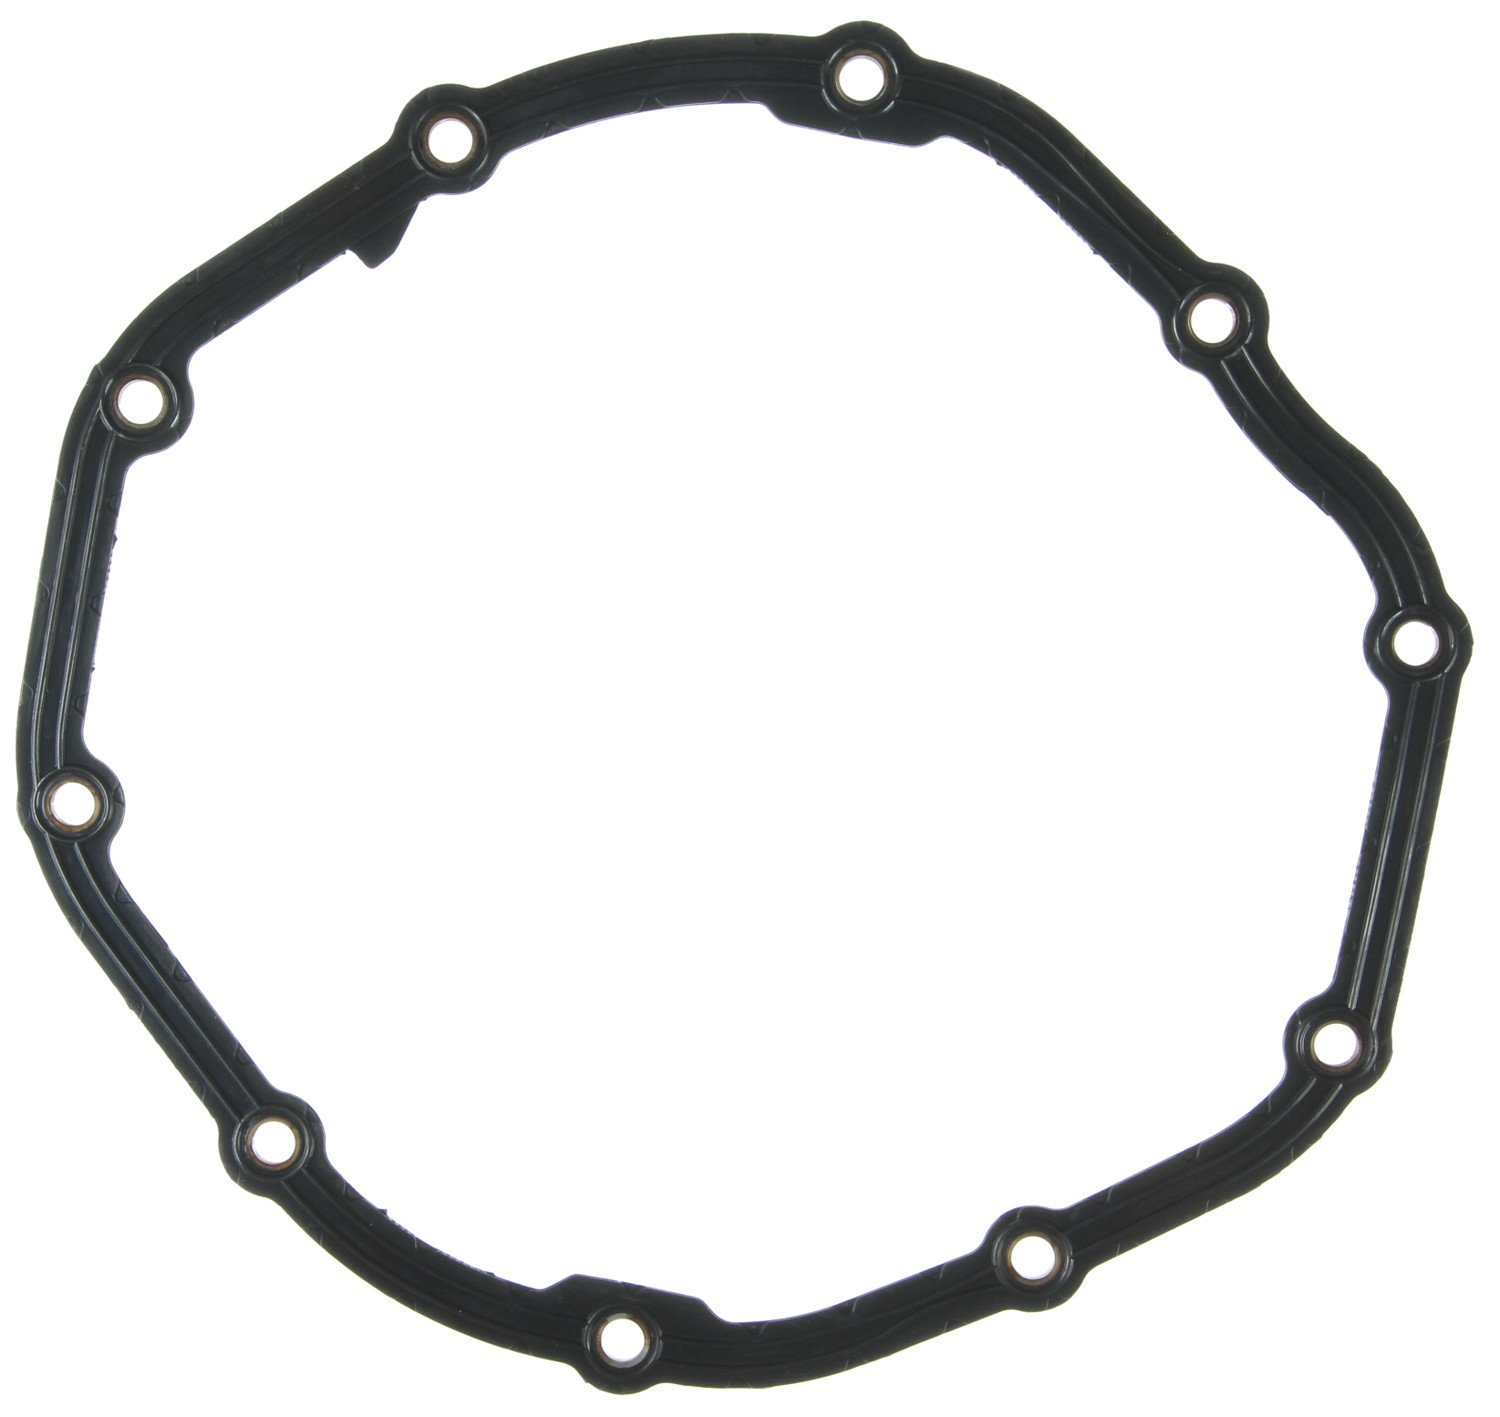 MAHLE Original P32864 Axle Housing Cover Gasket